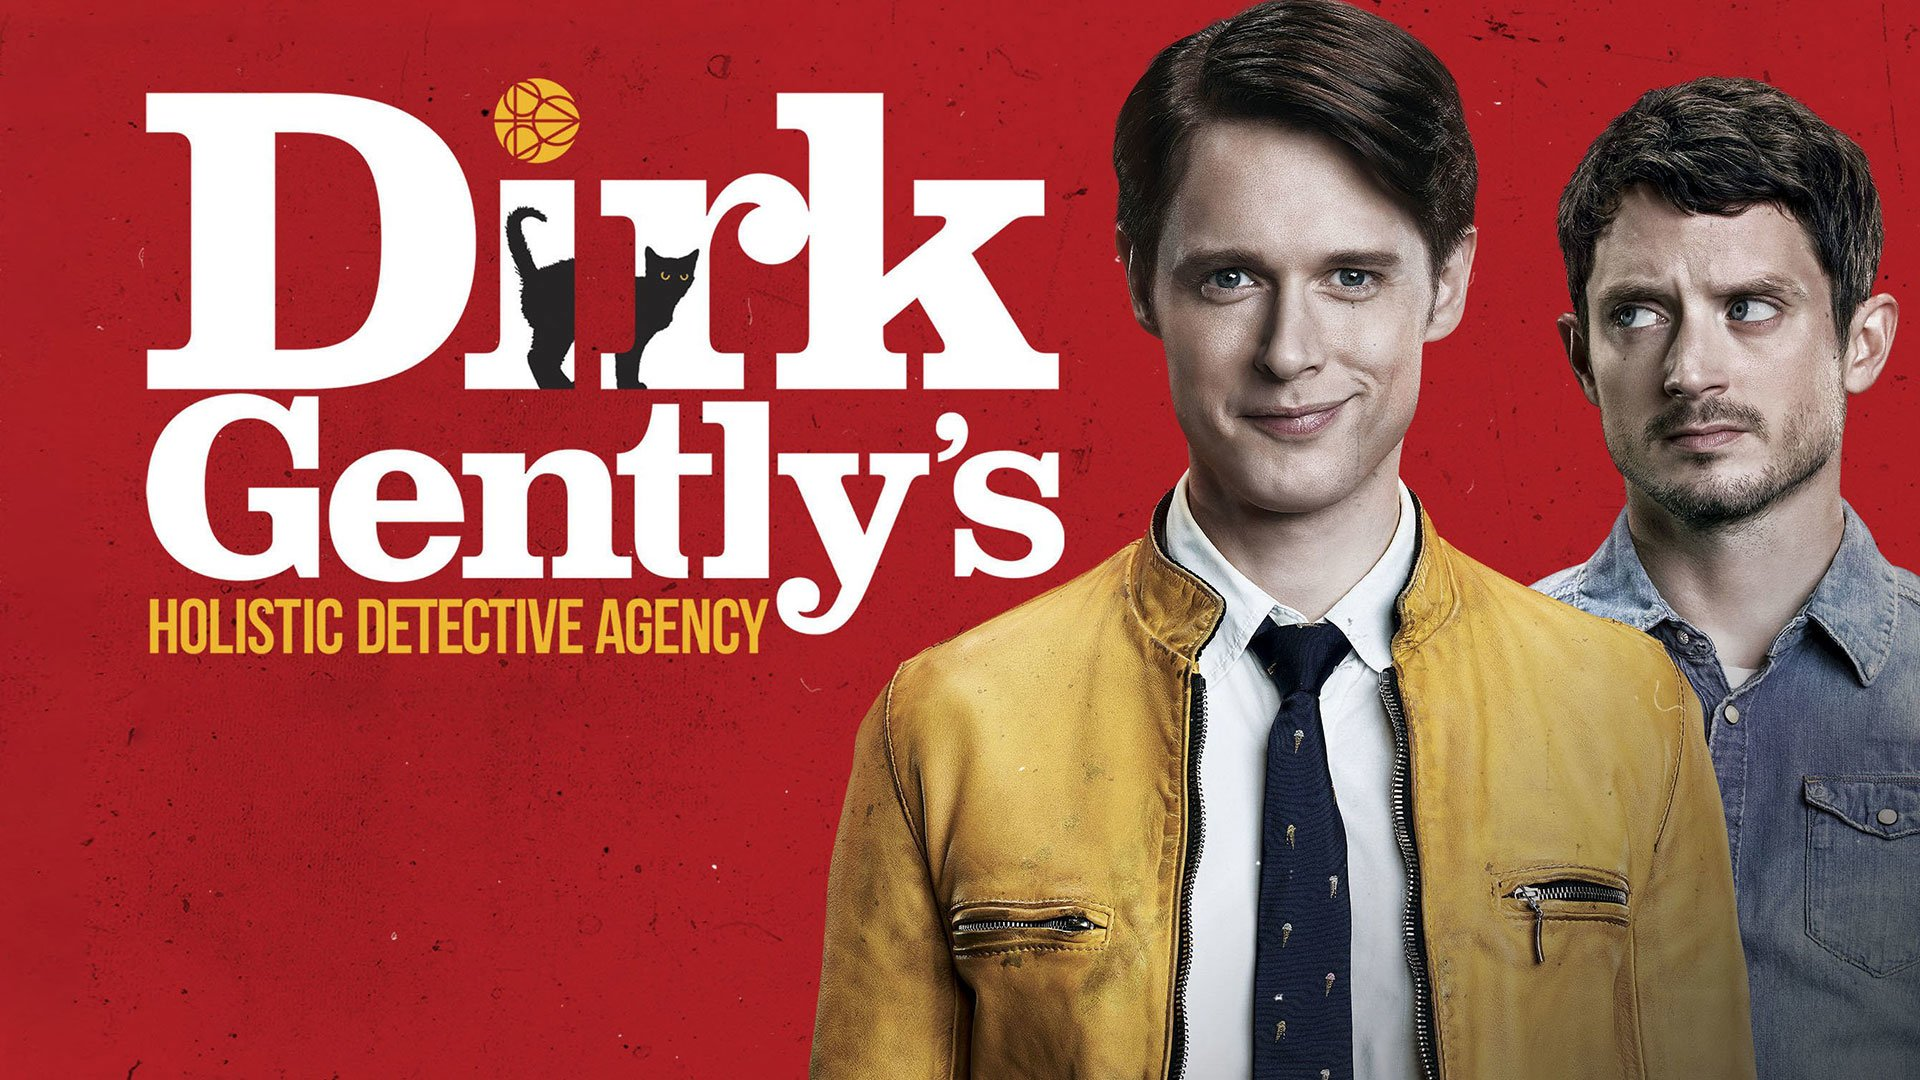 1 Dirk Gently S Holistic Detective Agency Hd Wallpapers